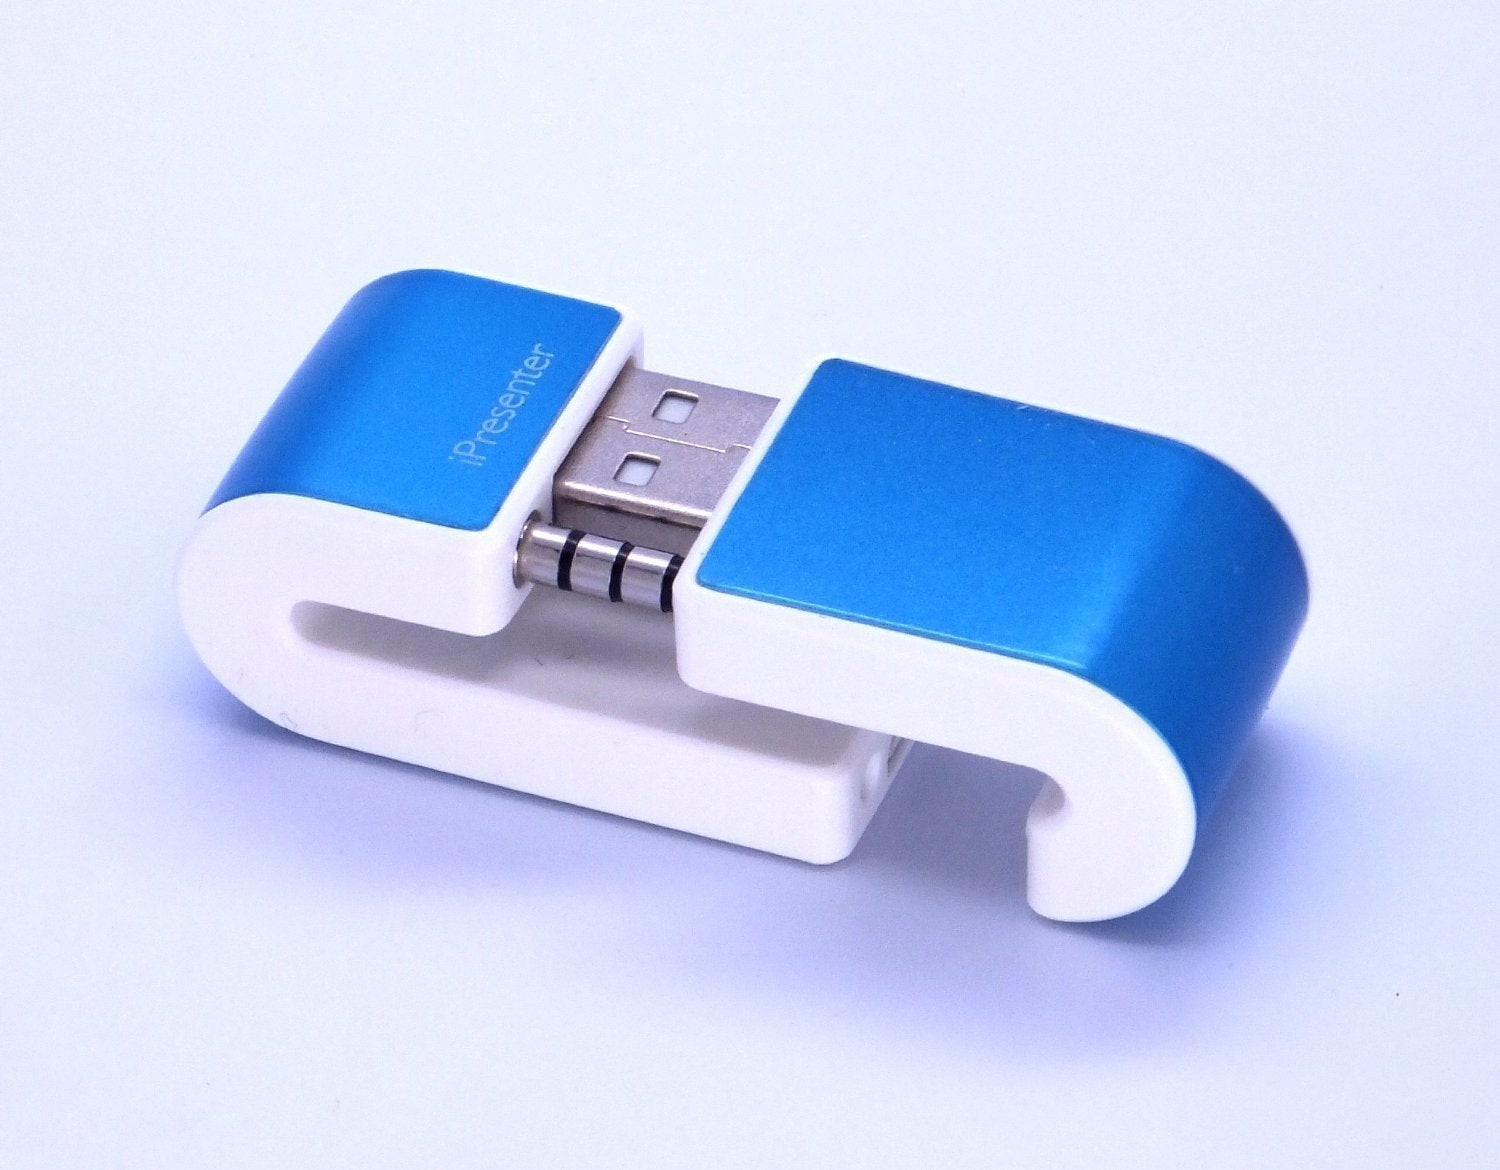 CyberTech iPresenter Wireless Presenter Remote/ Air Mouse for iPhone 4/5, Free App download, Compact Size,